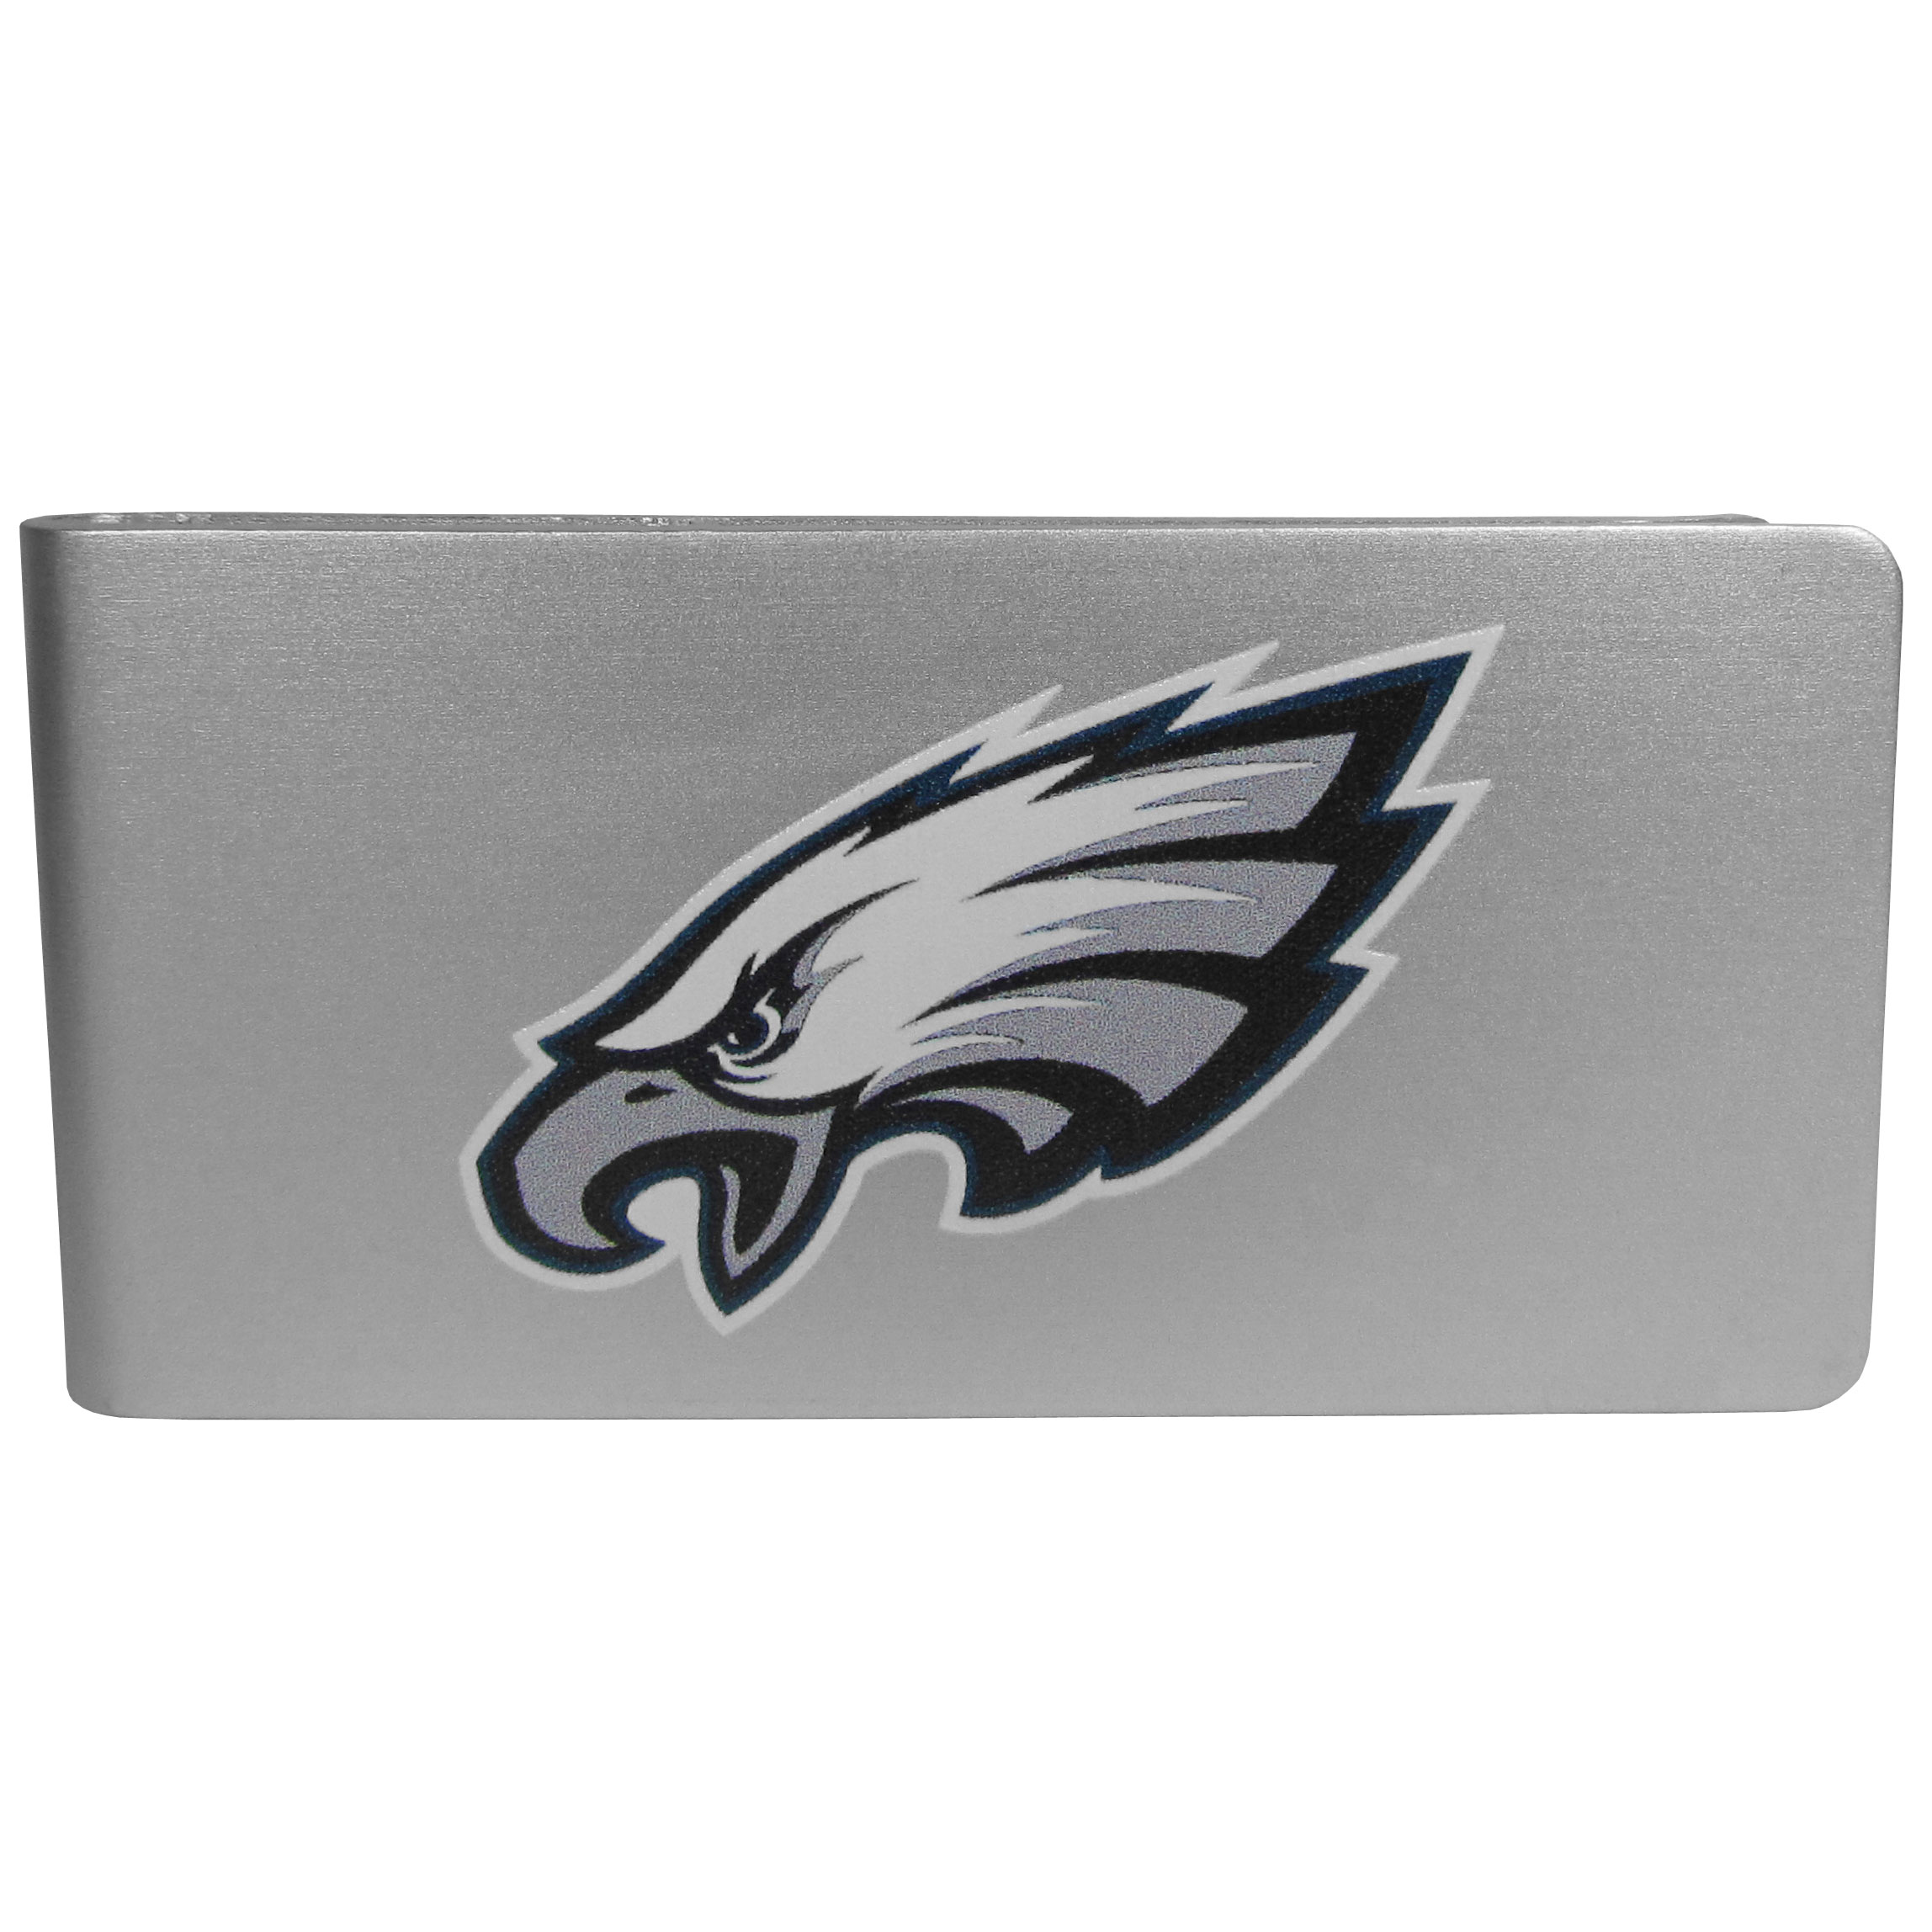 Philadelphia Eagles Logo Money Clip - Our brushed metal money clip has classic style and functionality. The attractive clip features the Philadelphia Eagles logo expertly printed on front.